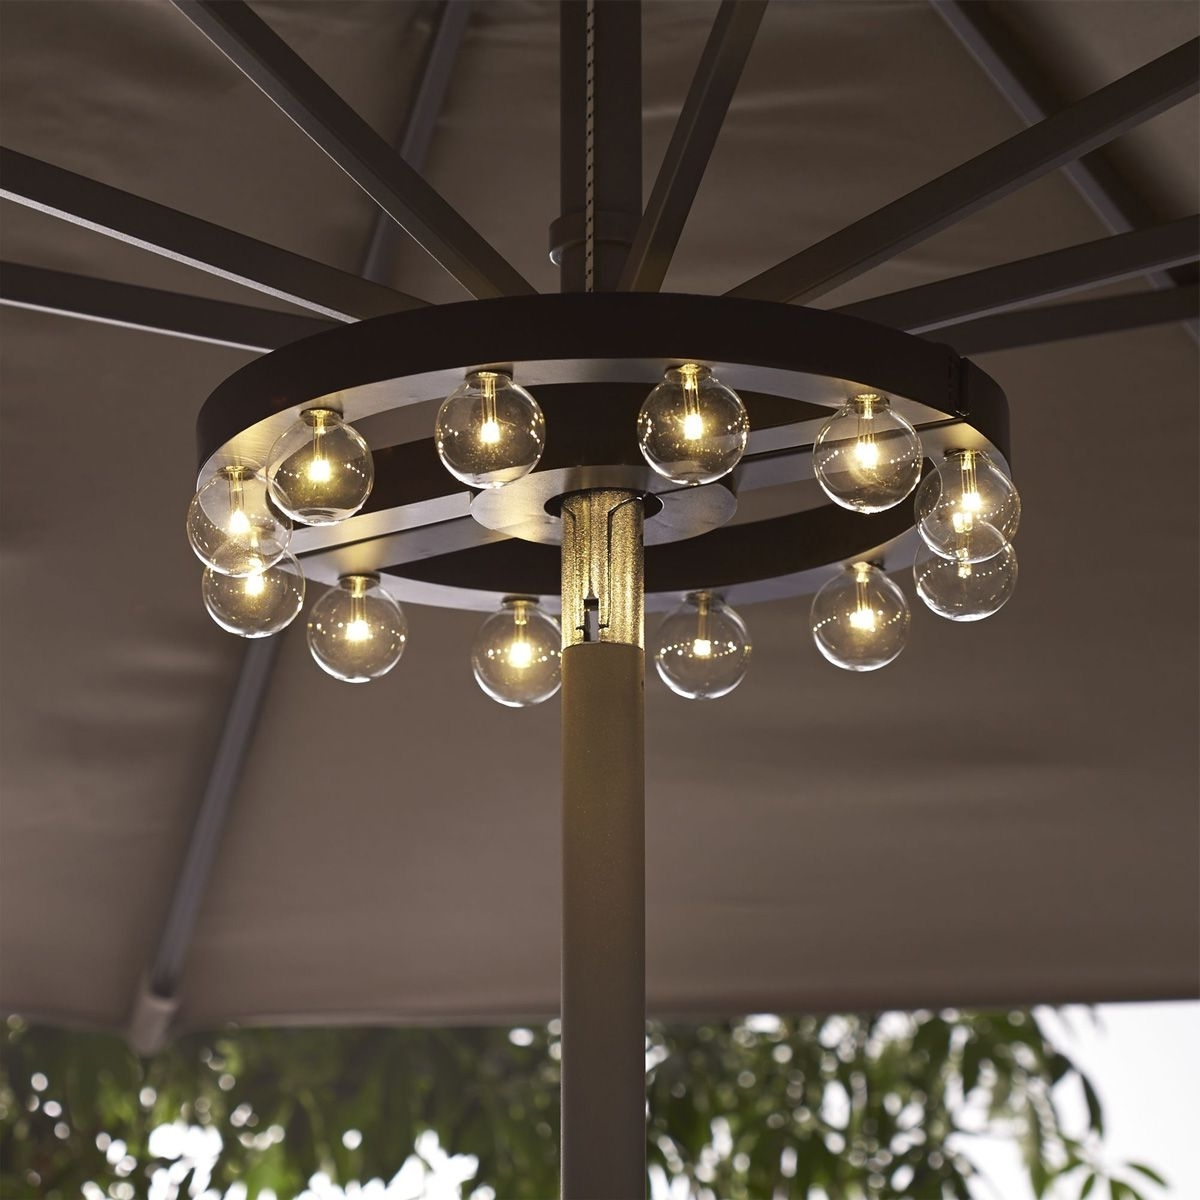 Famous Patio Umbrella Lights Throughout Patio Umbrella Marquee Lights (View 2 of 20)